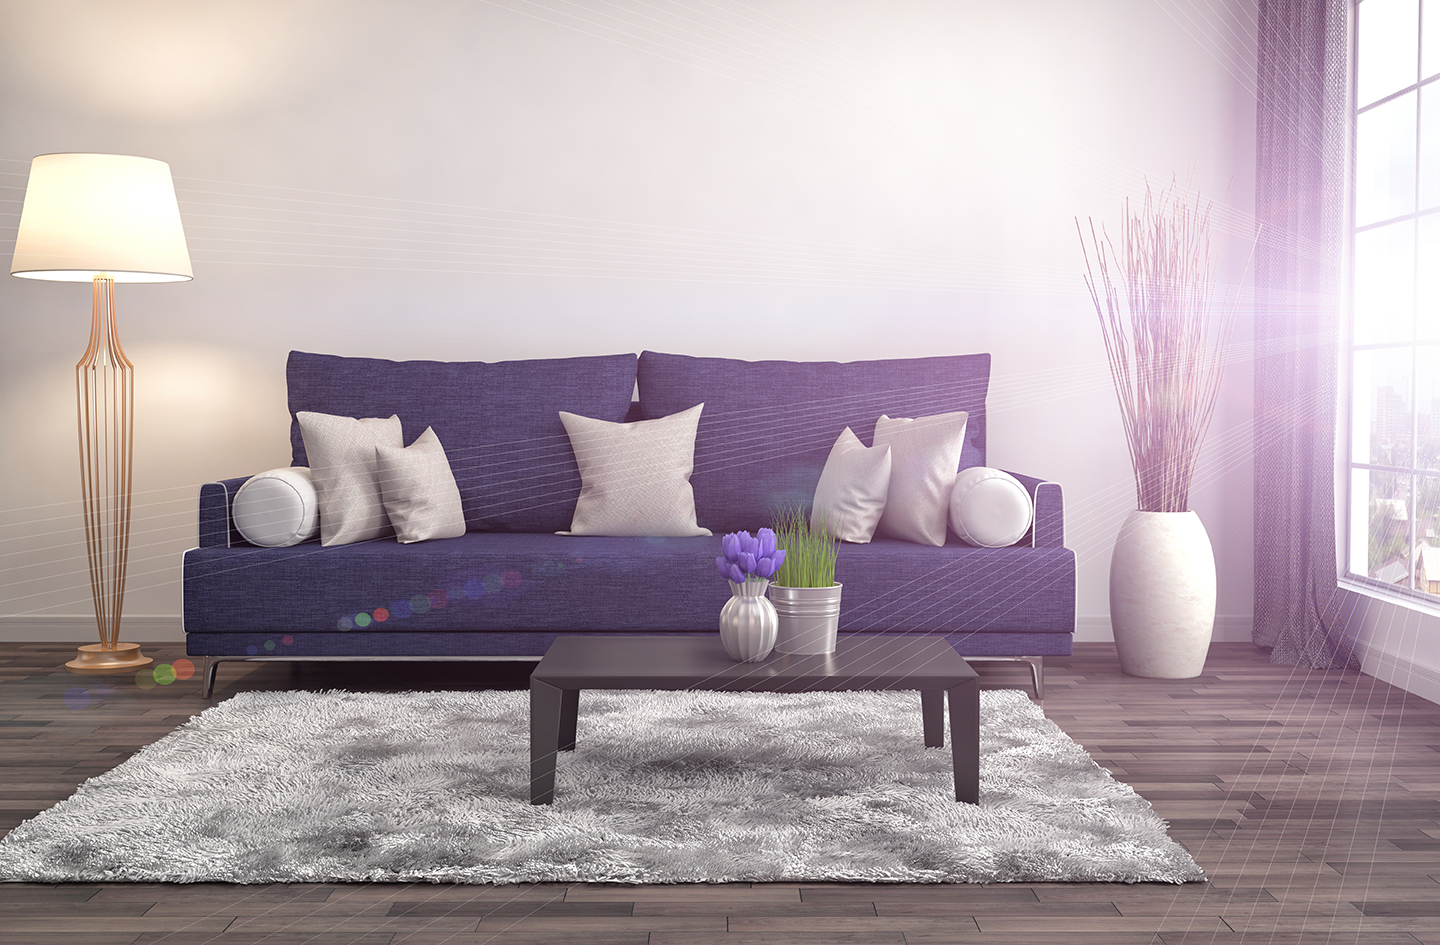 purple interior with sofa